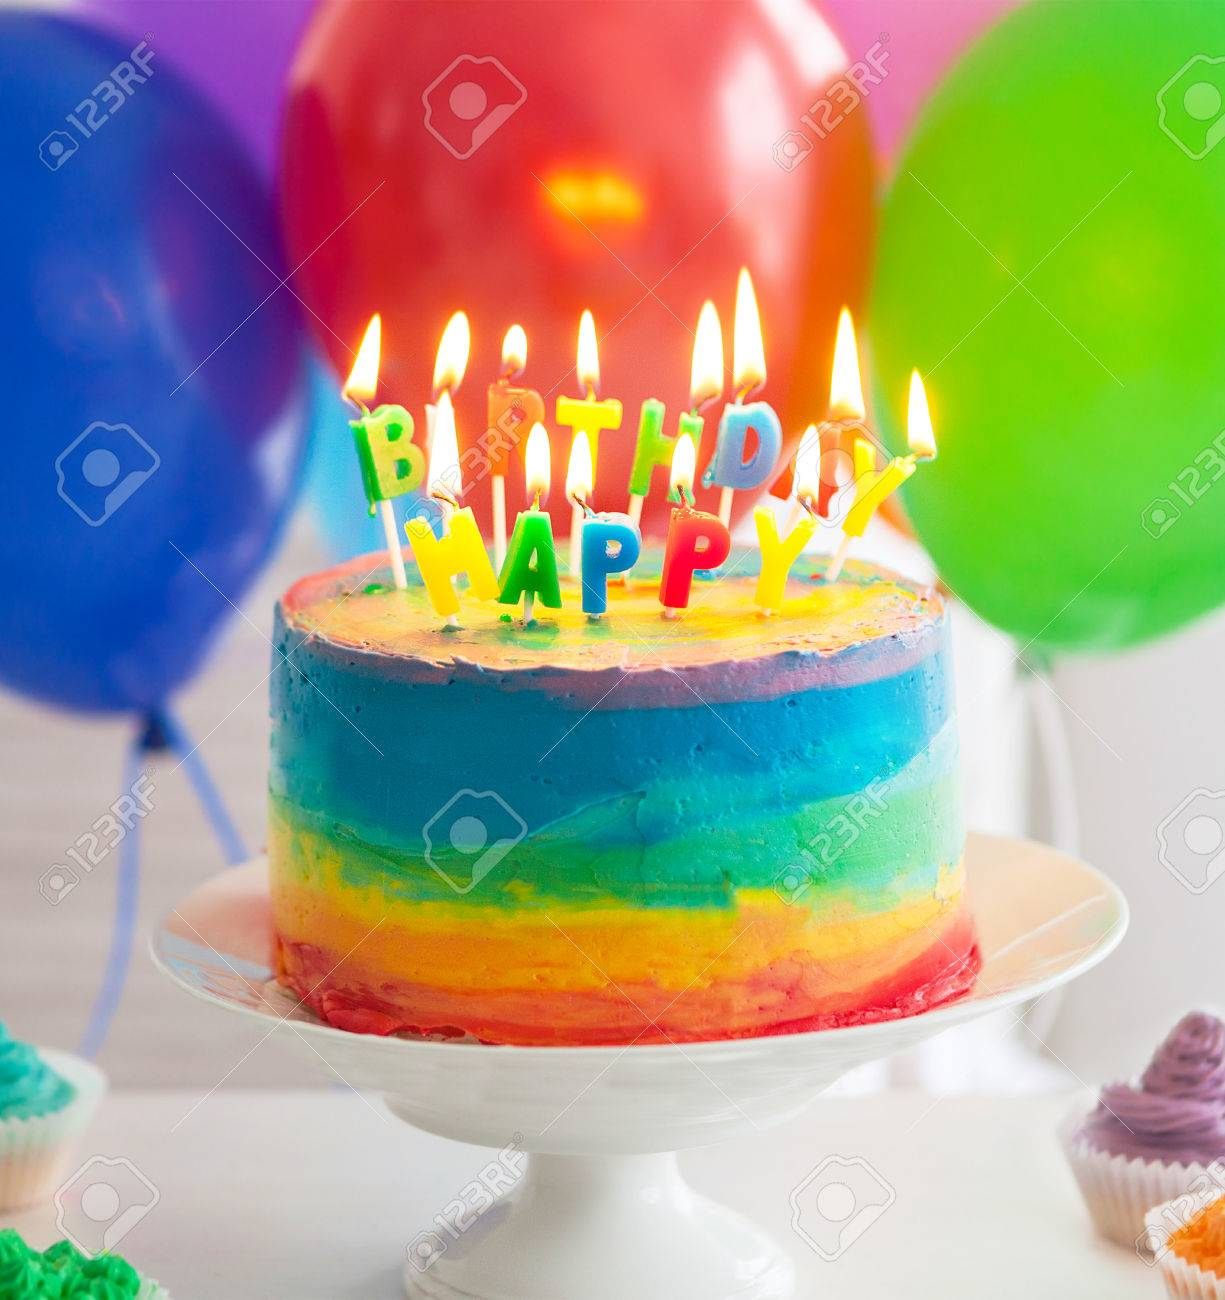 Rainbow Cake And Cupcakes Decorated With Birthday Candles Balloons On The Background Stock Photo